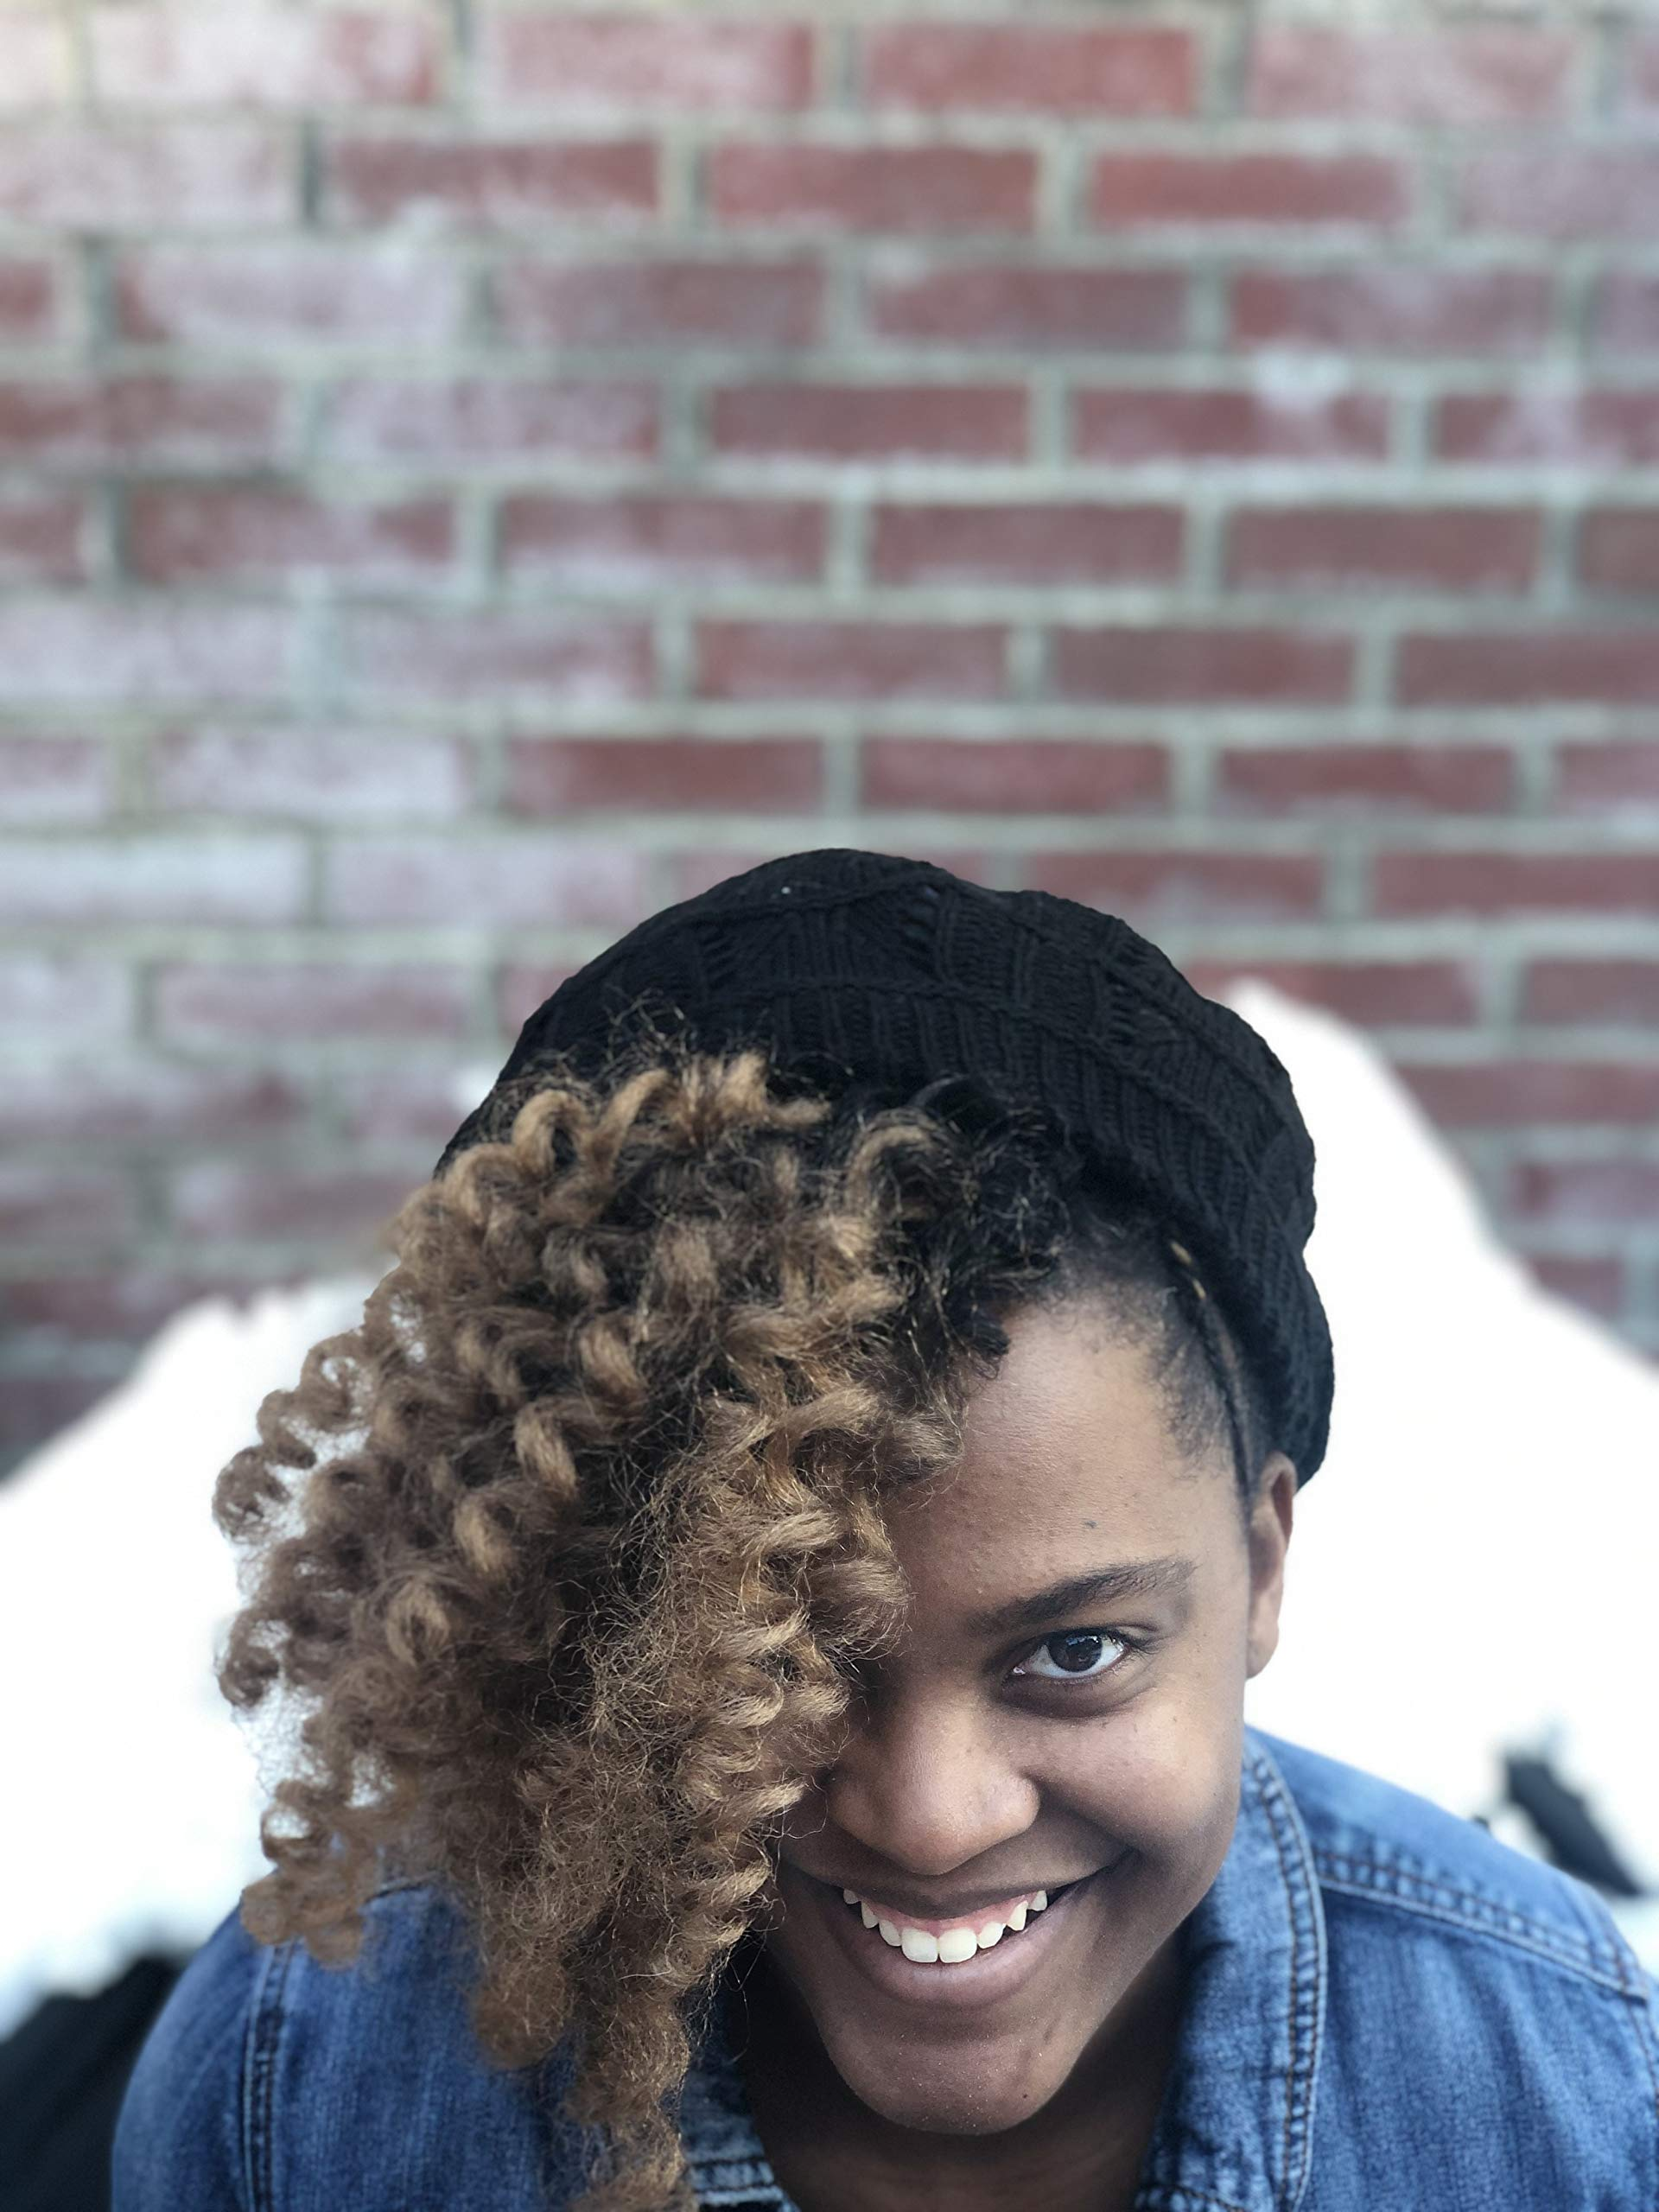 Satin Lined Beanie, Knit Beret Styled Hat for Natural Hair with a Slouchy fit Black